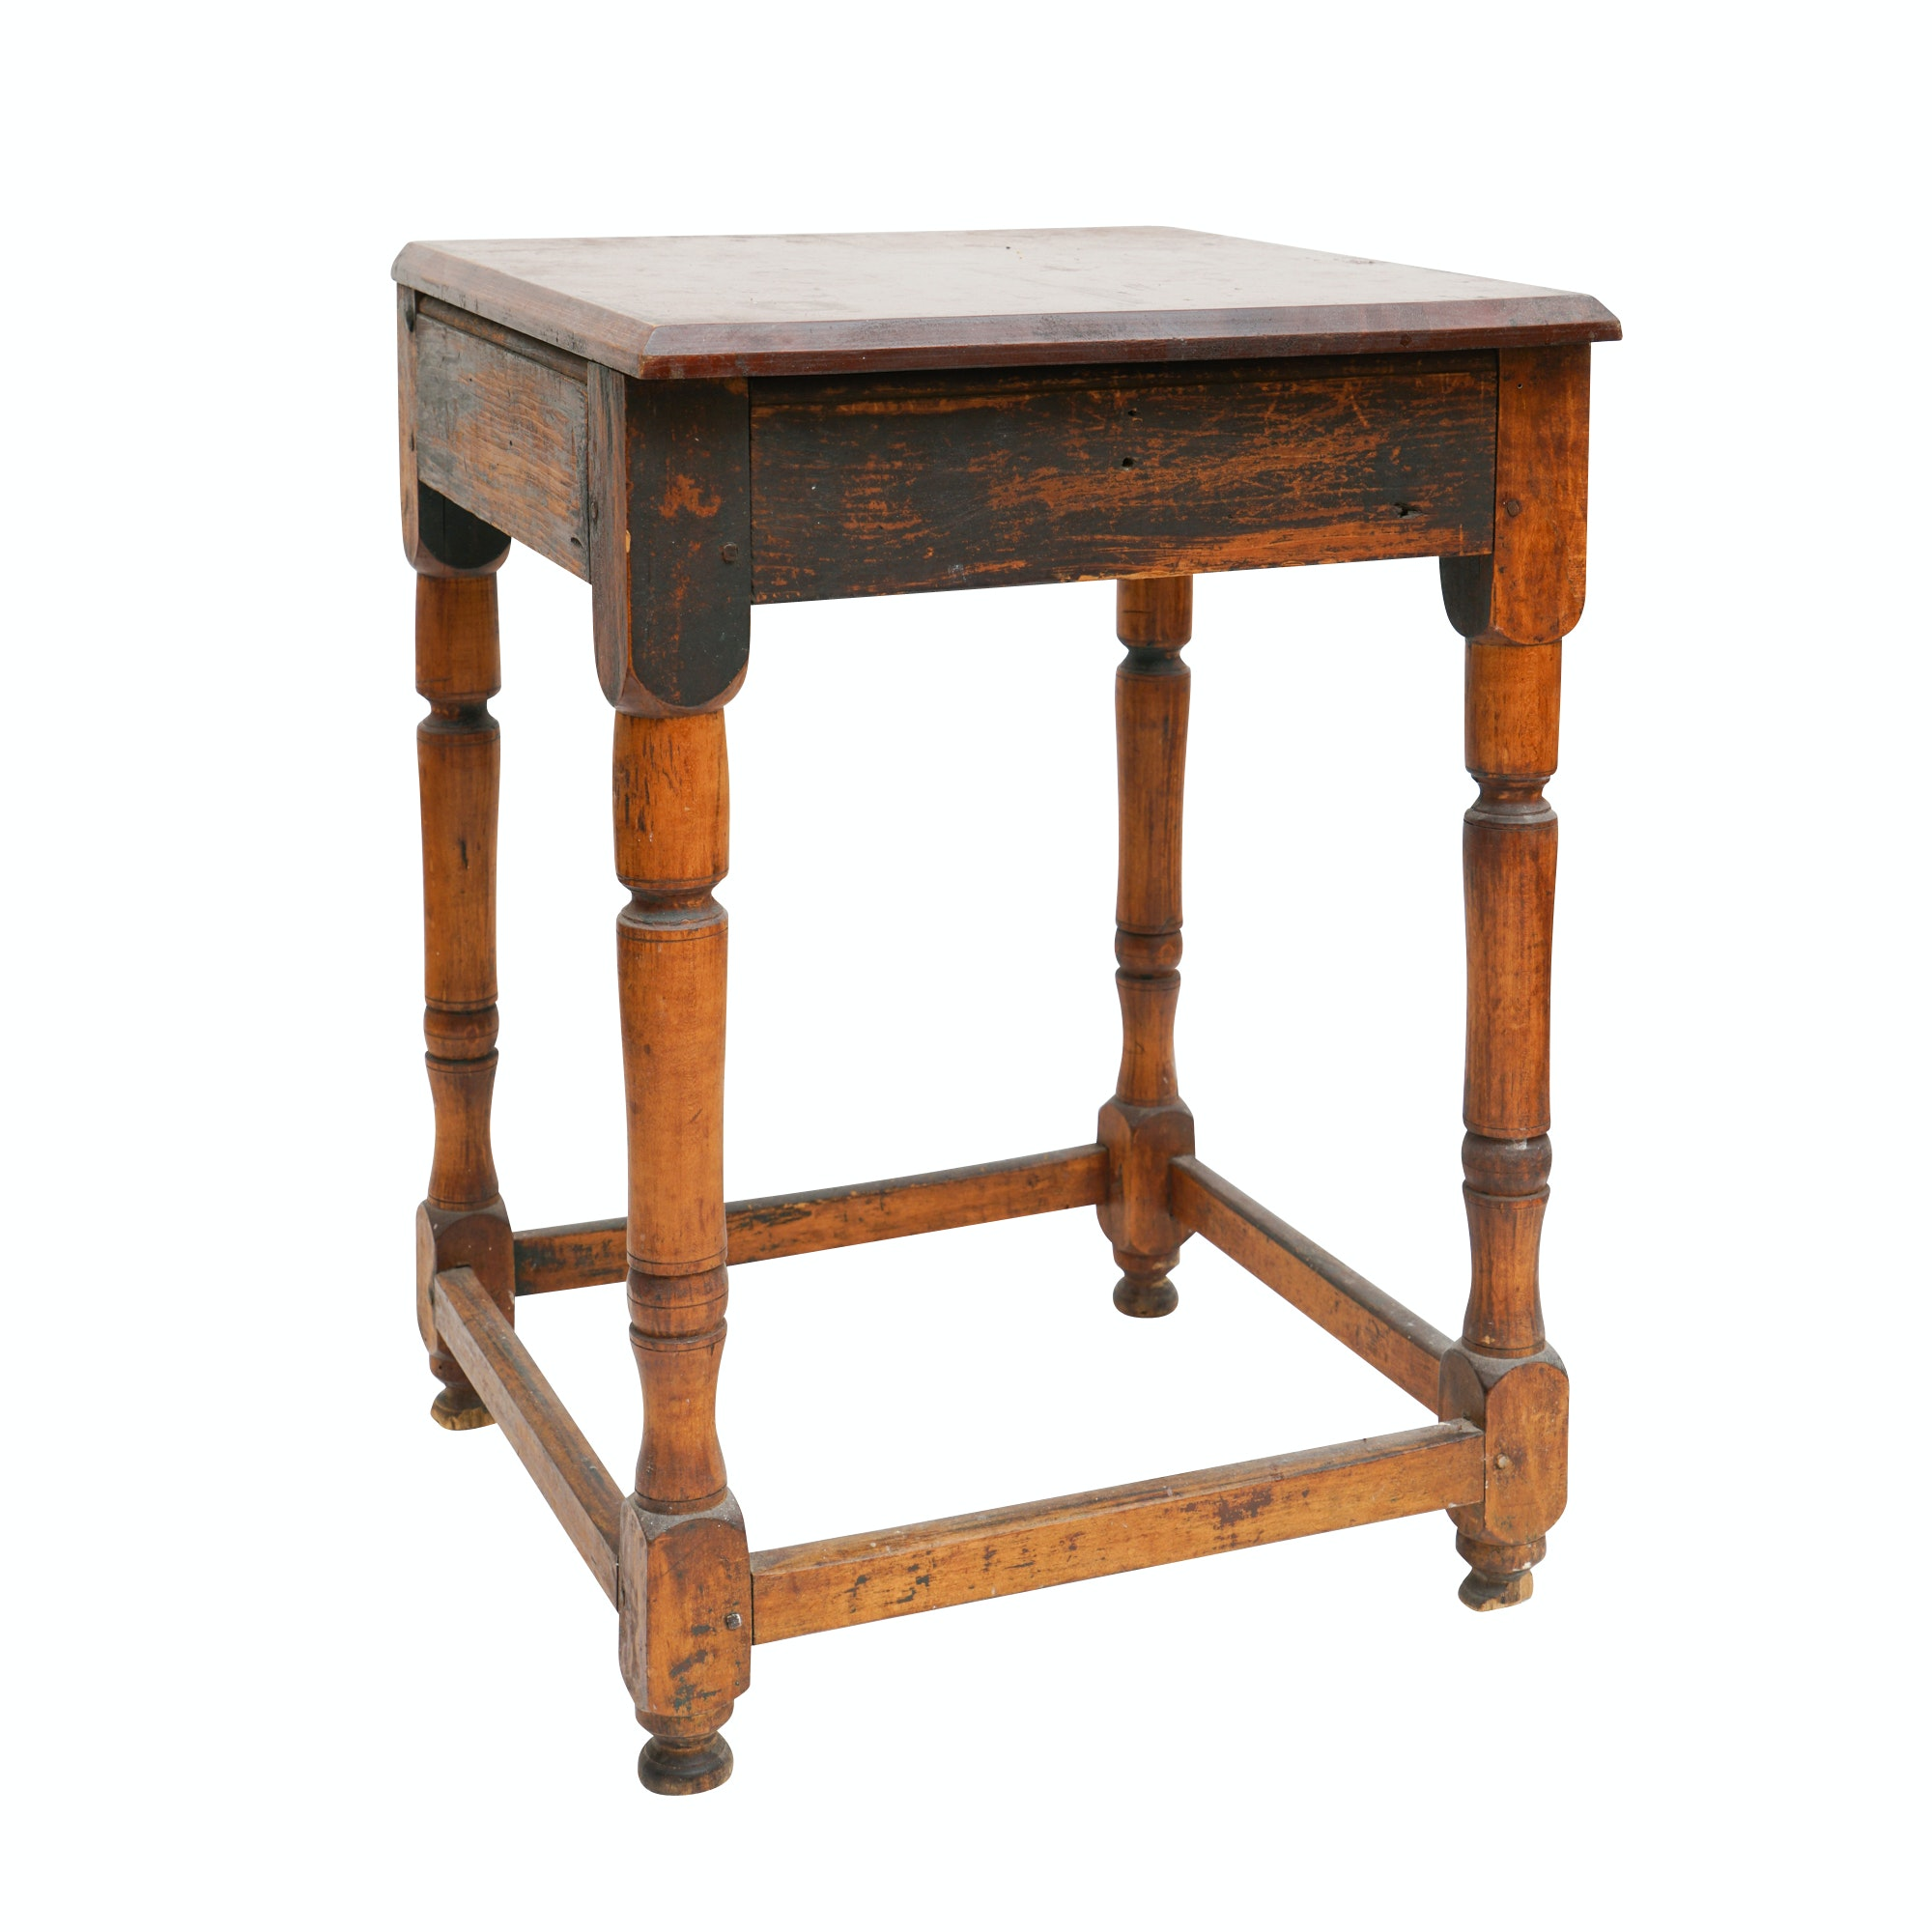 Antique Tavern Table in Maple and Pine